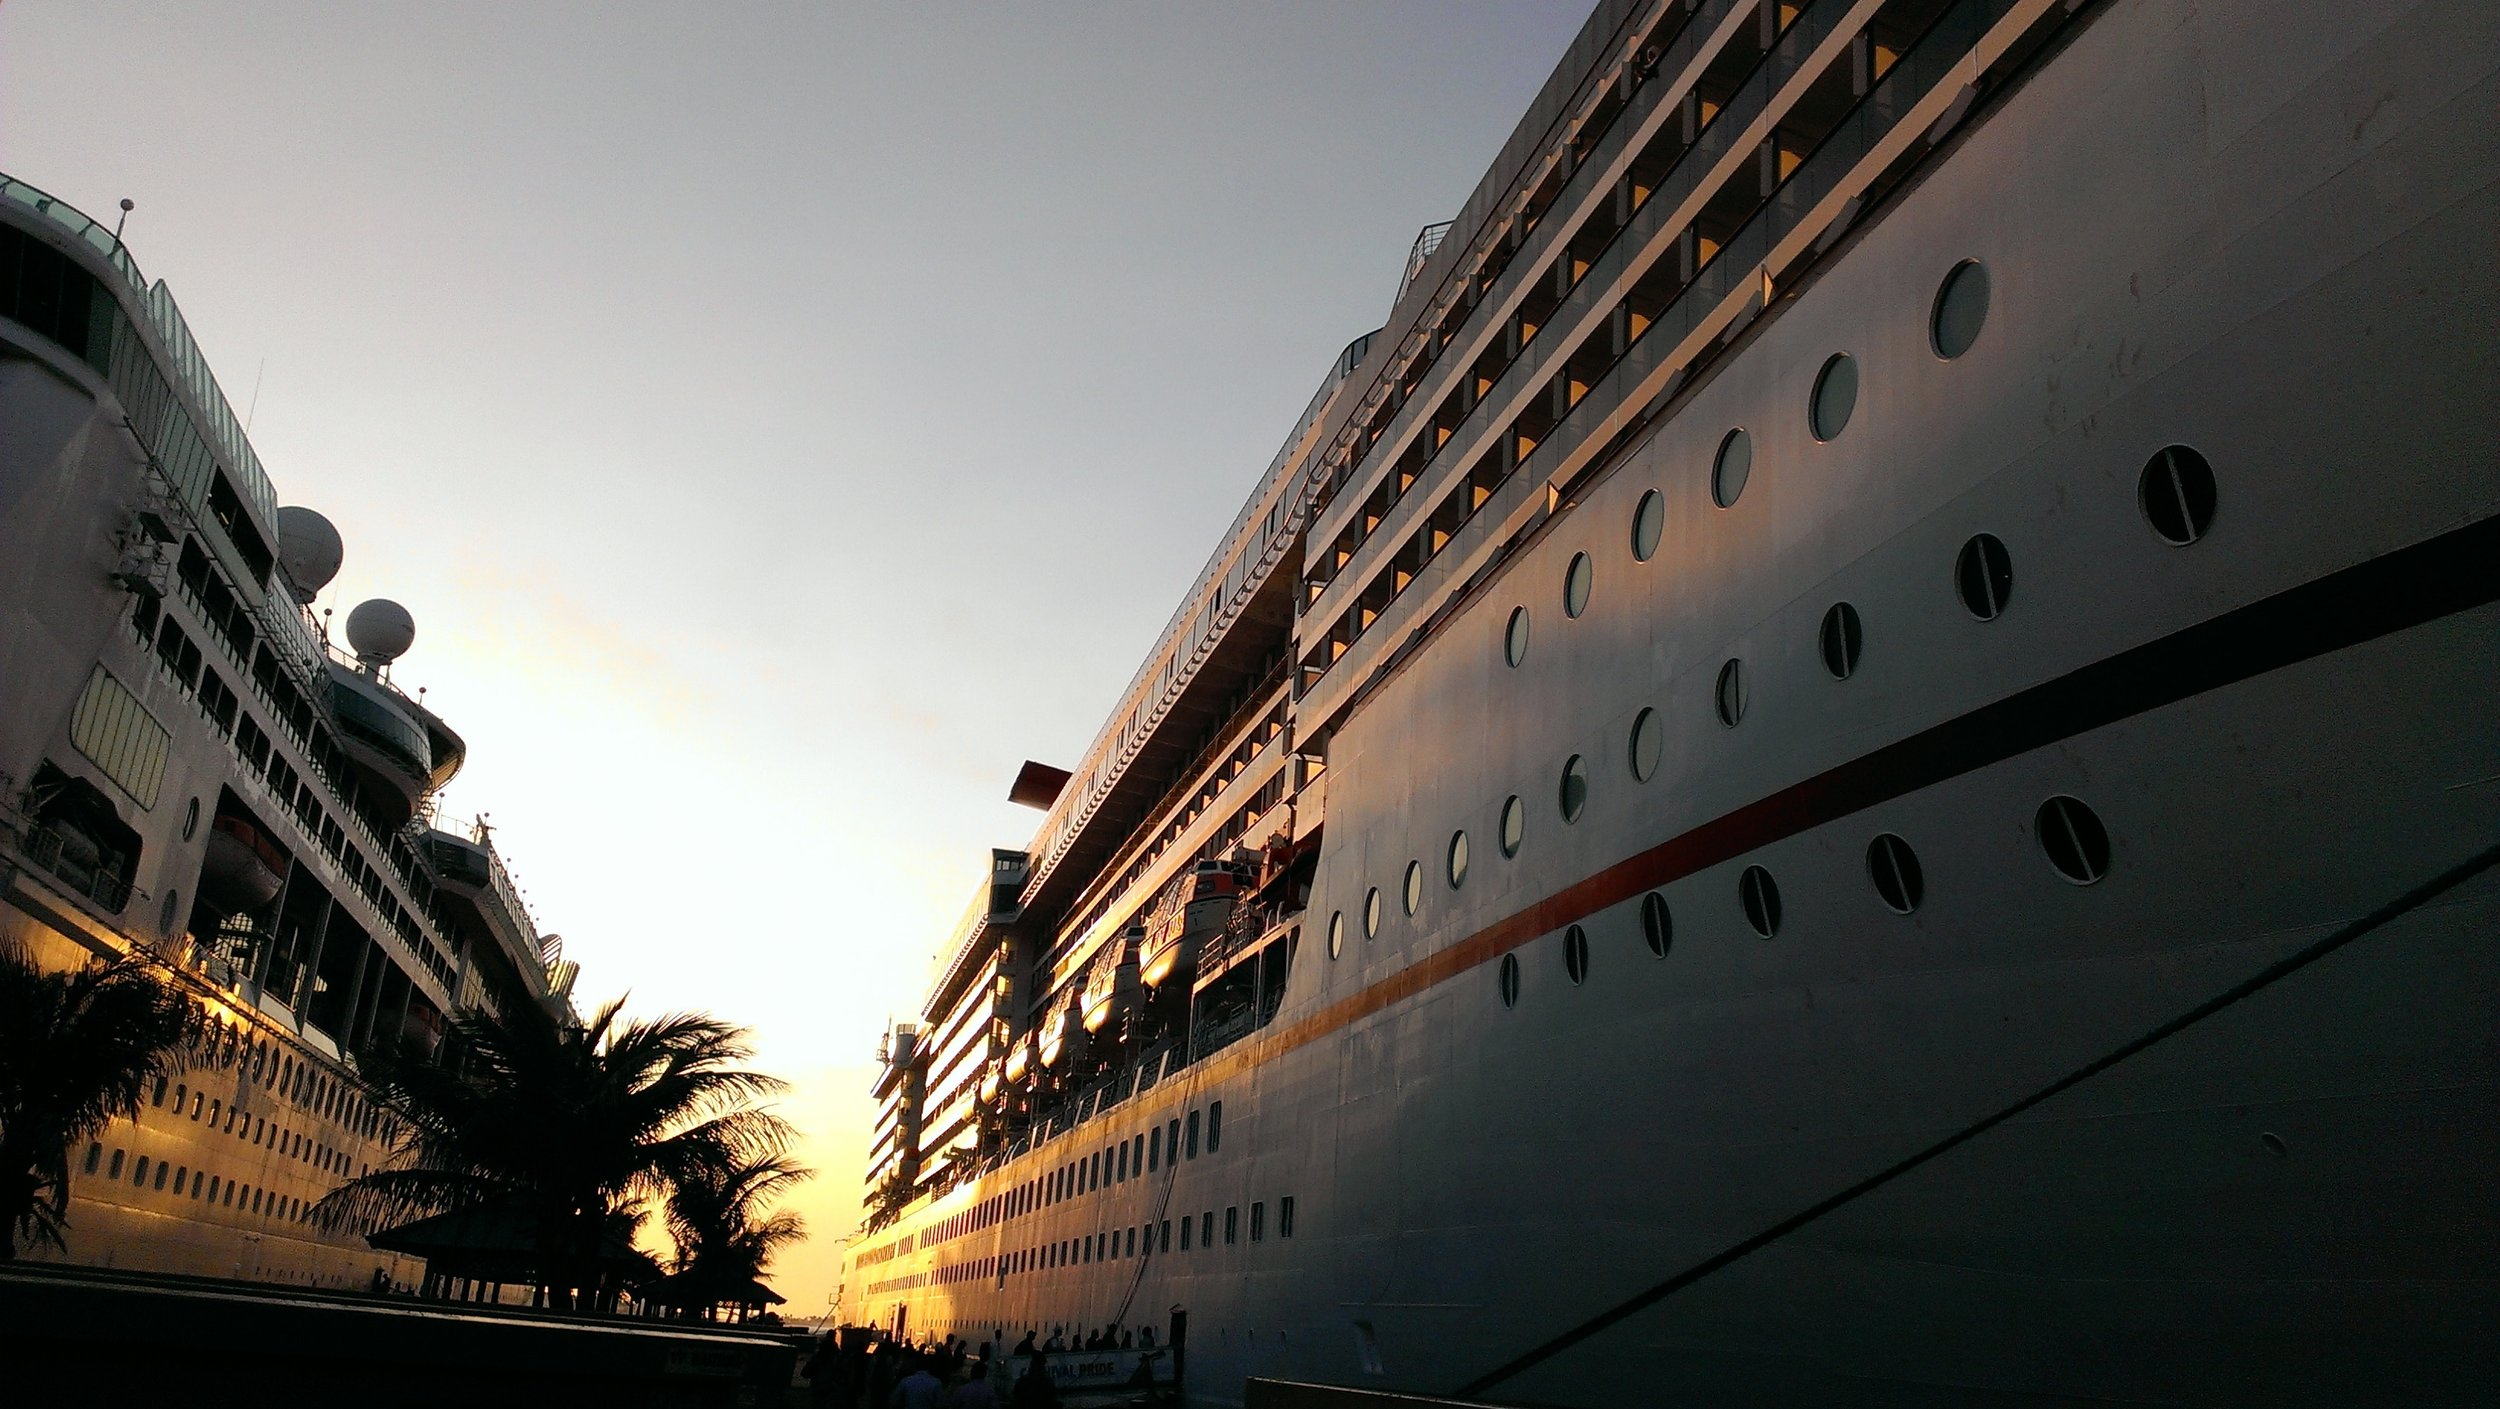 PROTECT YOUR PASSENGERS - Add a layer of protection throughout your ships to help reduce the risk of a costly outbreak. UV disinfection has been proven to kill up to 99.9% of bacteria and viruses, including E. coli, Salmonella, Norovirus, and more.